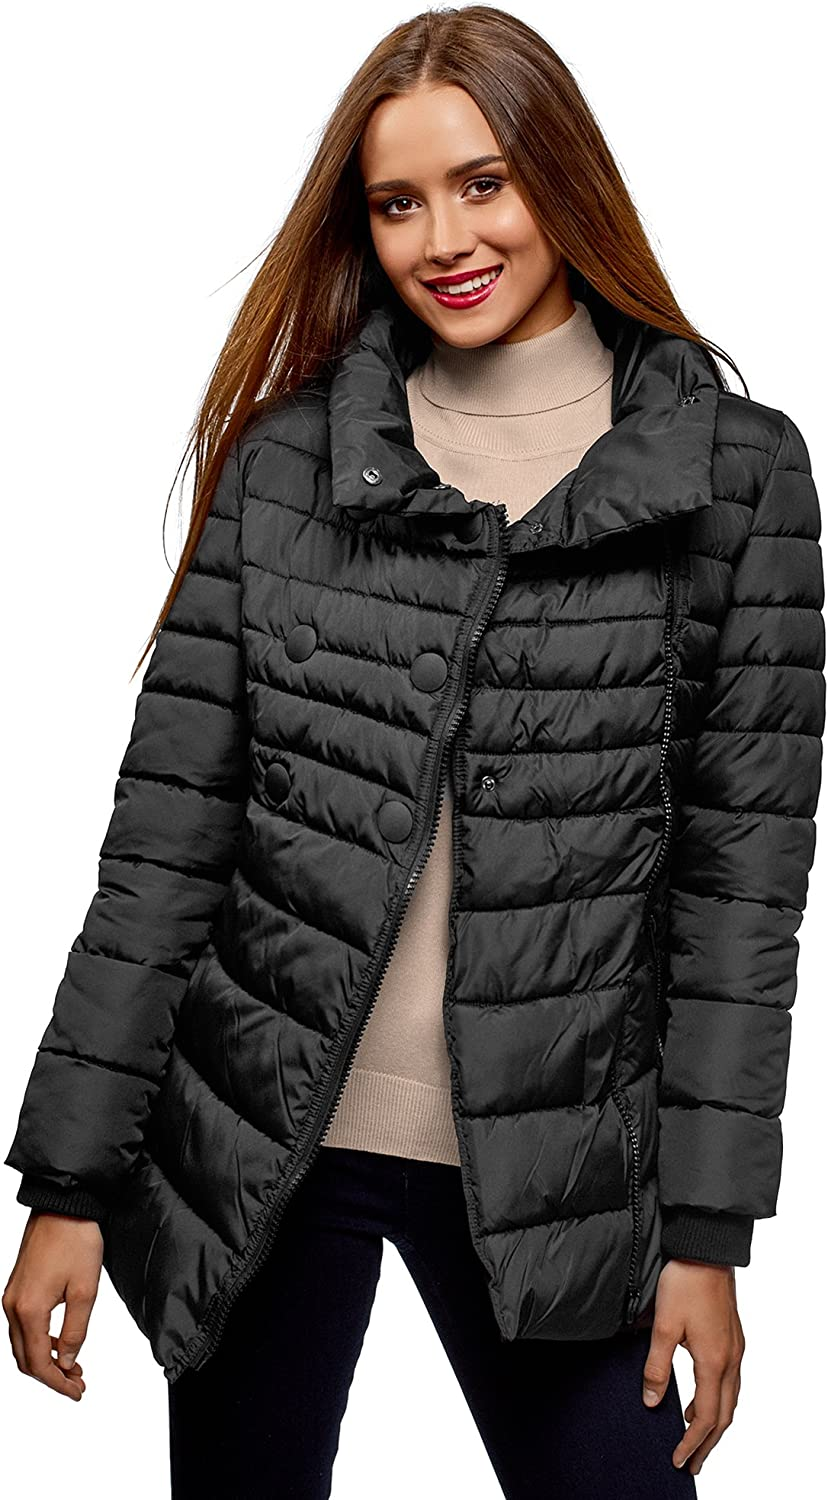 Oodji Ultra Women's Quilted Zipper Jacket with Decorative Buttons